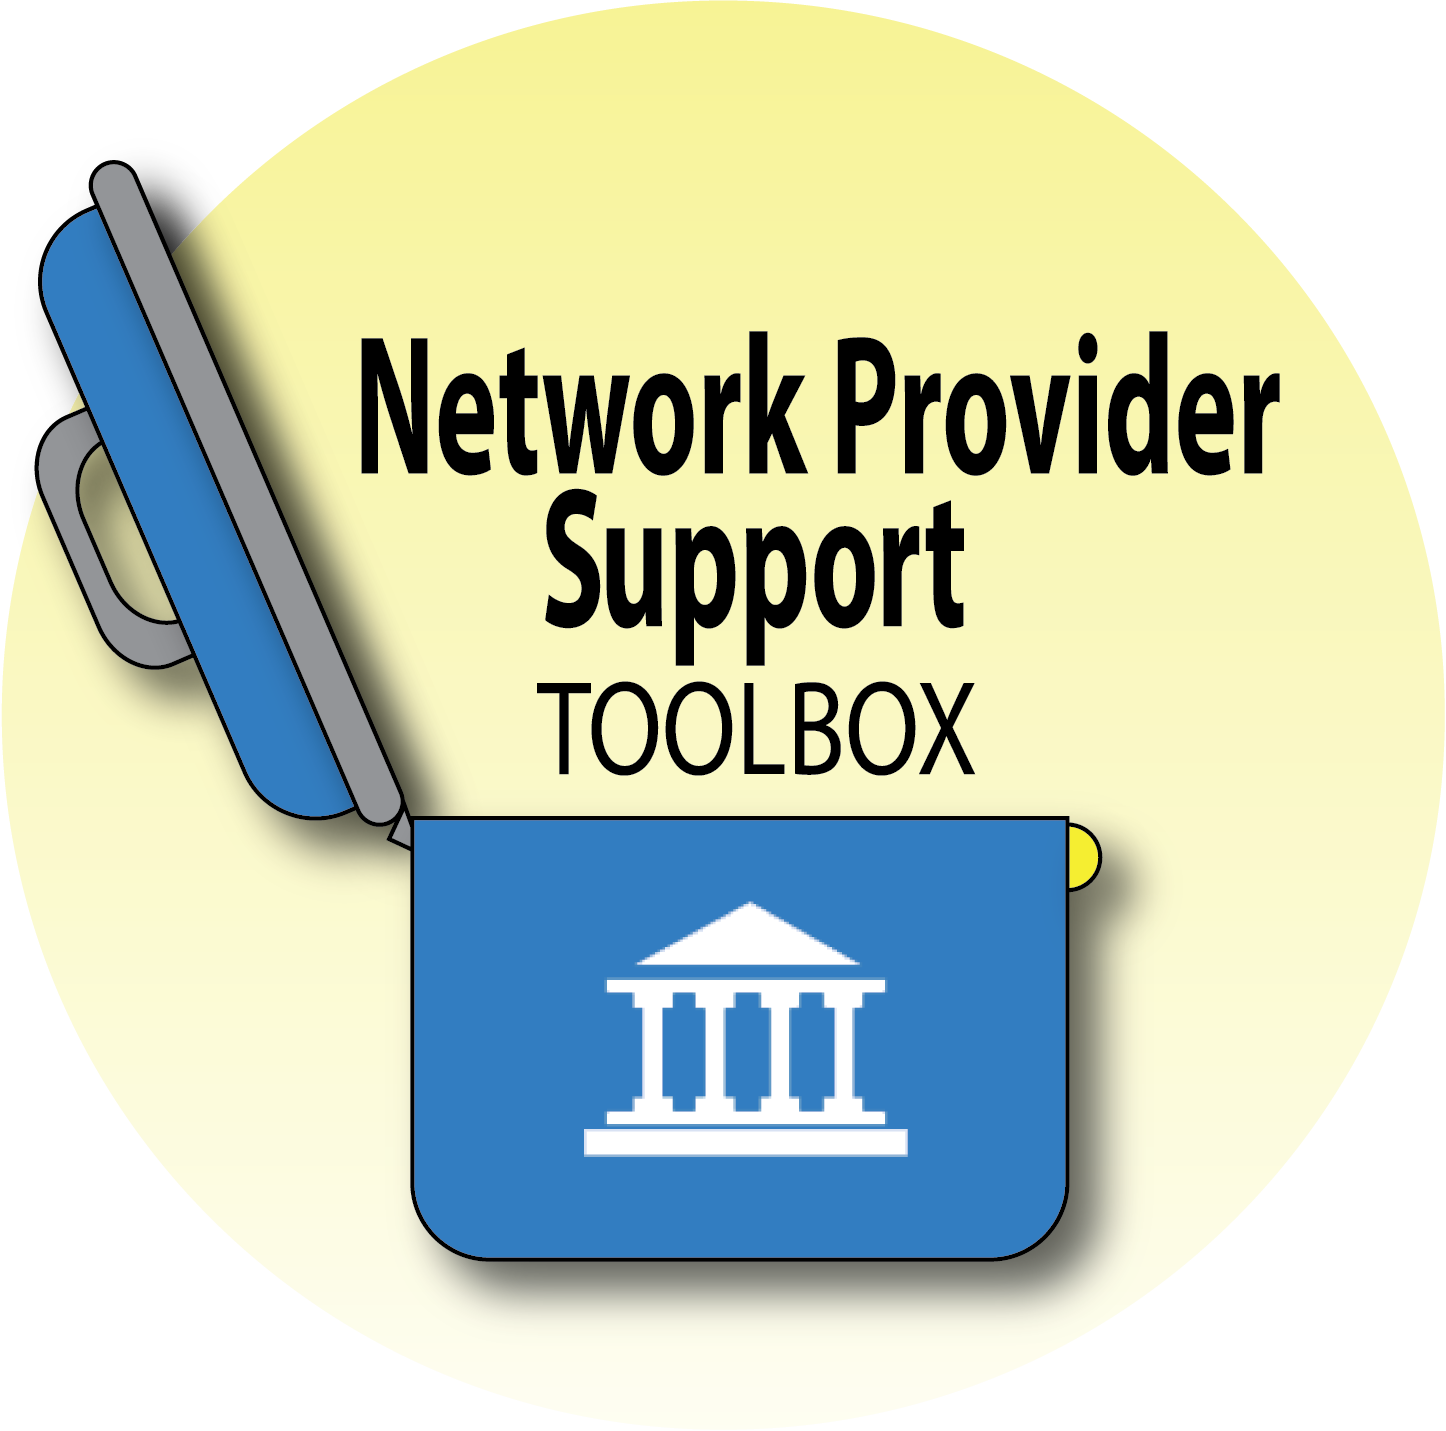 Network Provider Toolbox